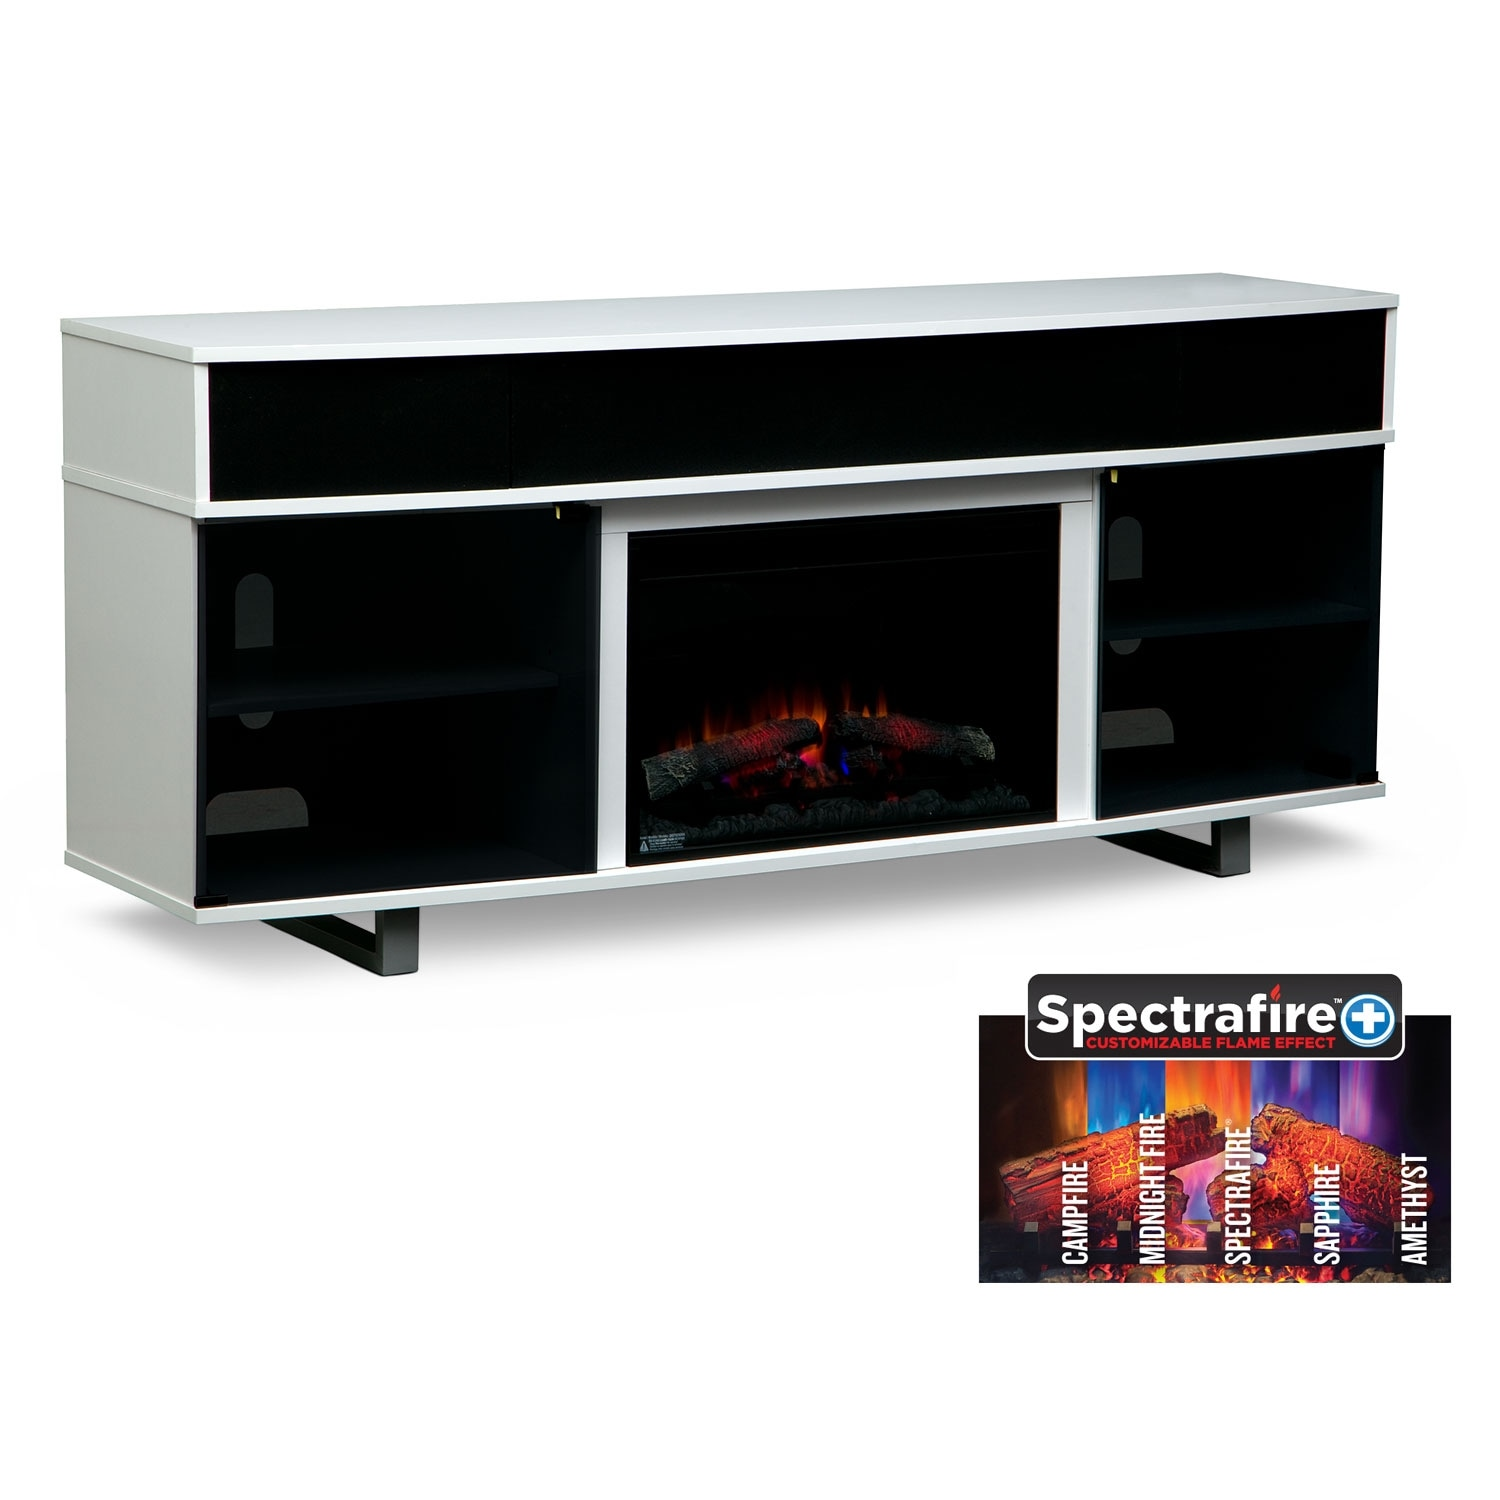 Stunning Tables De Television Contemporary Joshkrajcik Us  # Table Basse Pour Televiseur